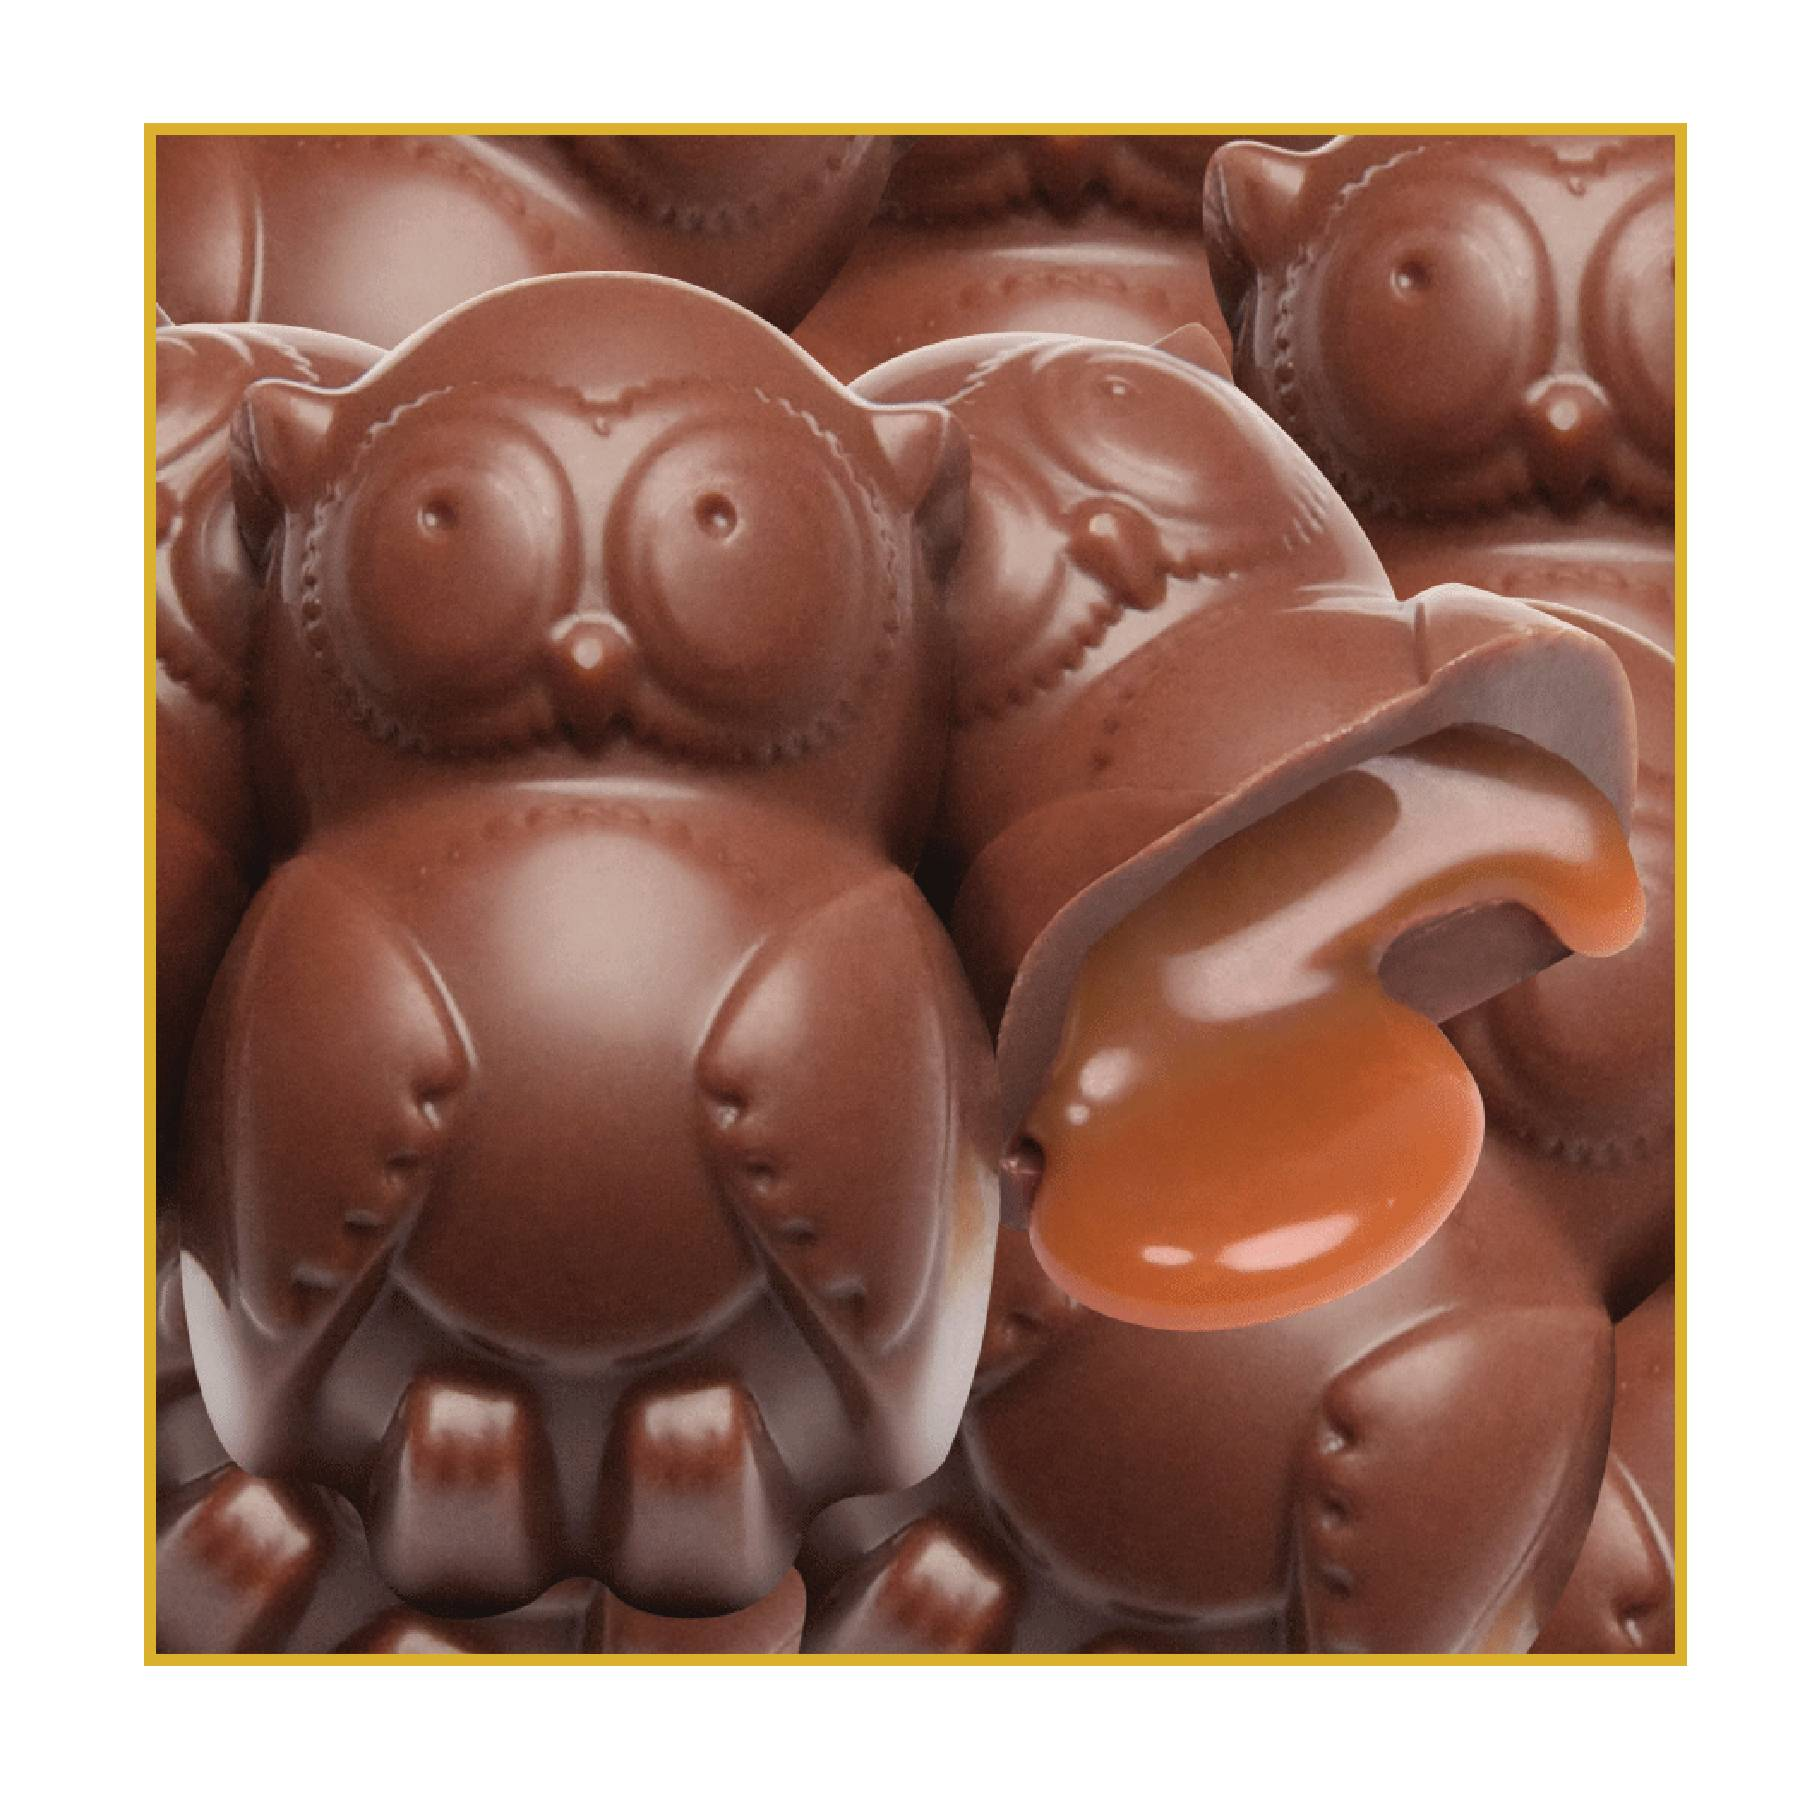 Dulce De Leche Owls join the product lineup for GSNI's 2013 Fall Product Program.